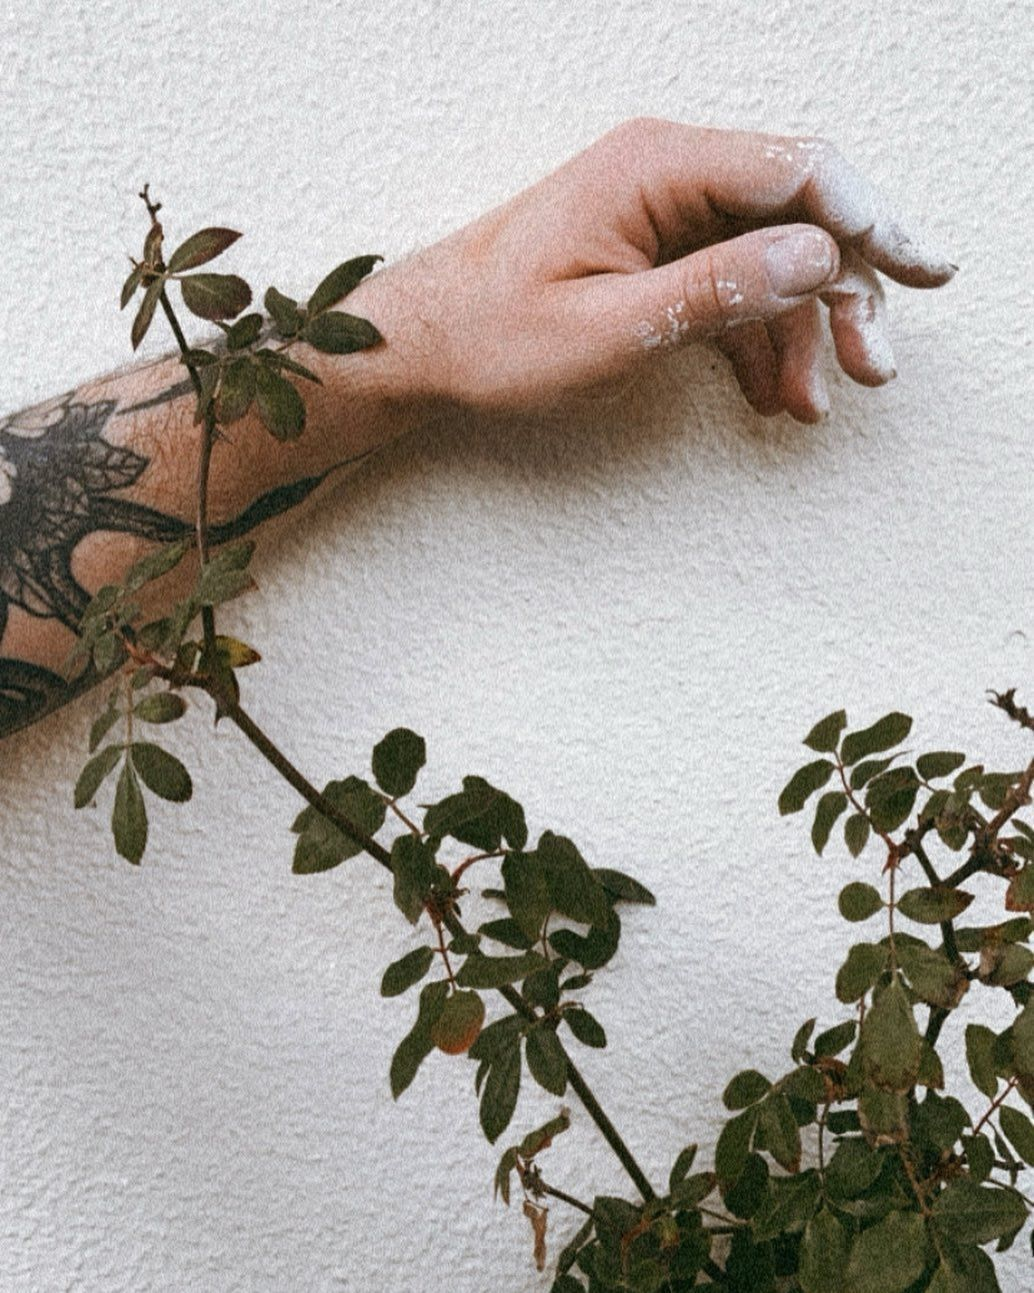 𝗗𝗜𝗬 . . . . #diy  #hand  #me #tattoo  #inked  #inkedboy  #inkedguys #photography  #nature  #plants  #plant #green